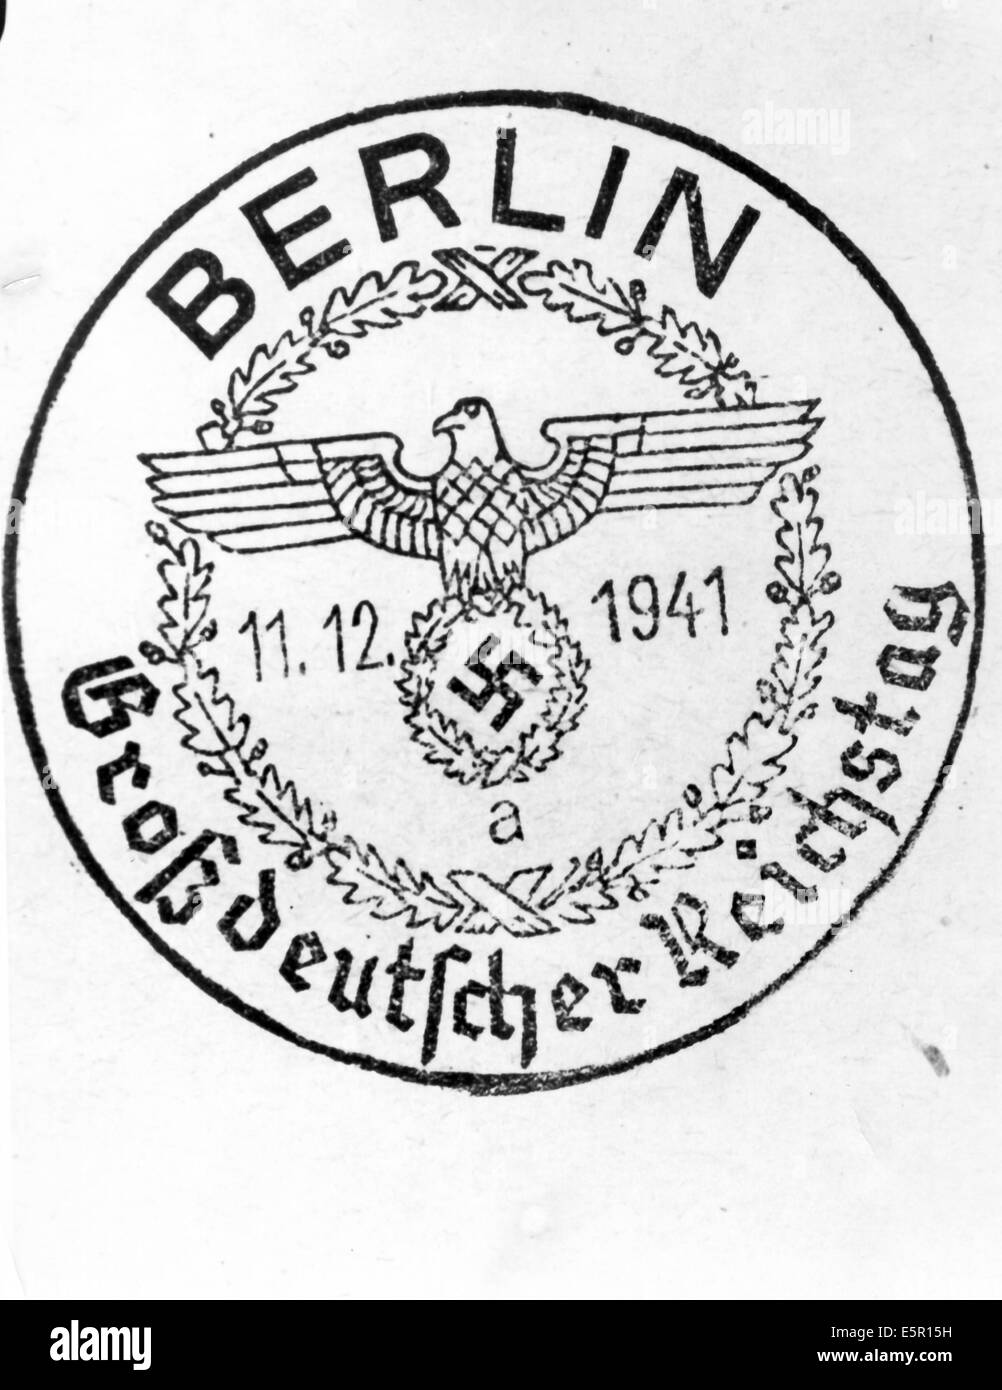 A special postmark stamp for the session of the Grossdeutscher Reichstag (Greater German Reichstag) in Berlin, Germany, - Stock Image